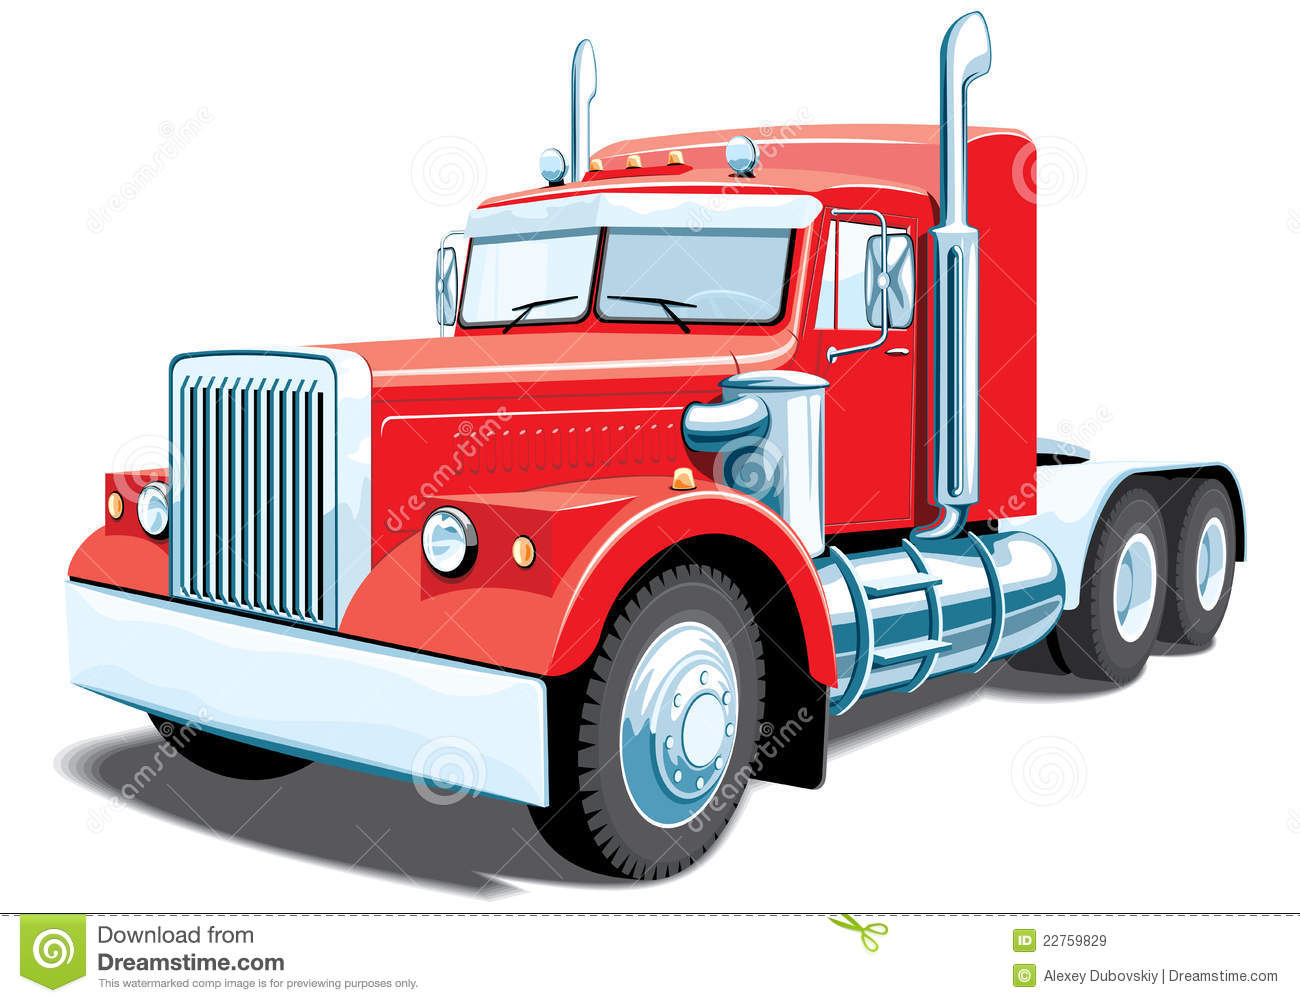 clipart truck - photo #49